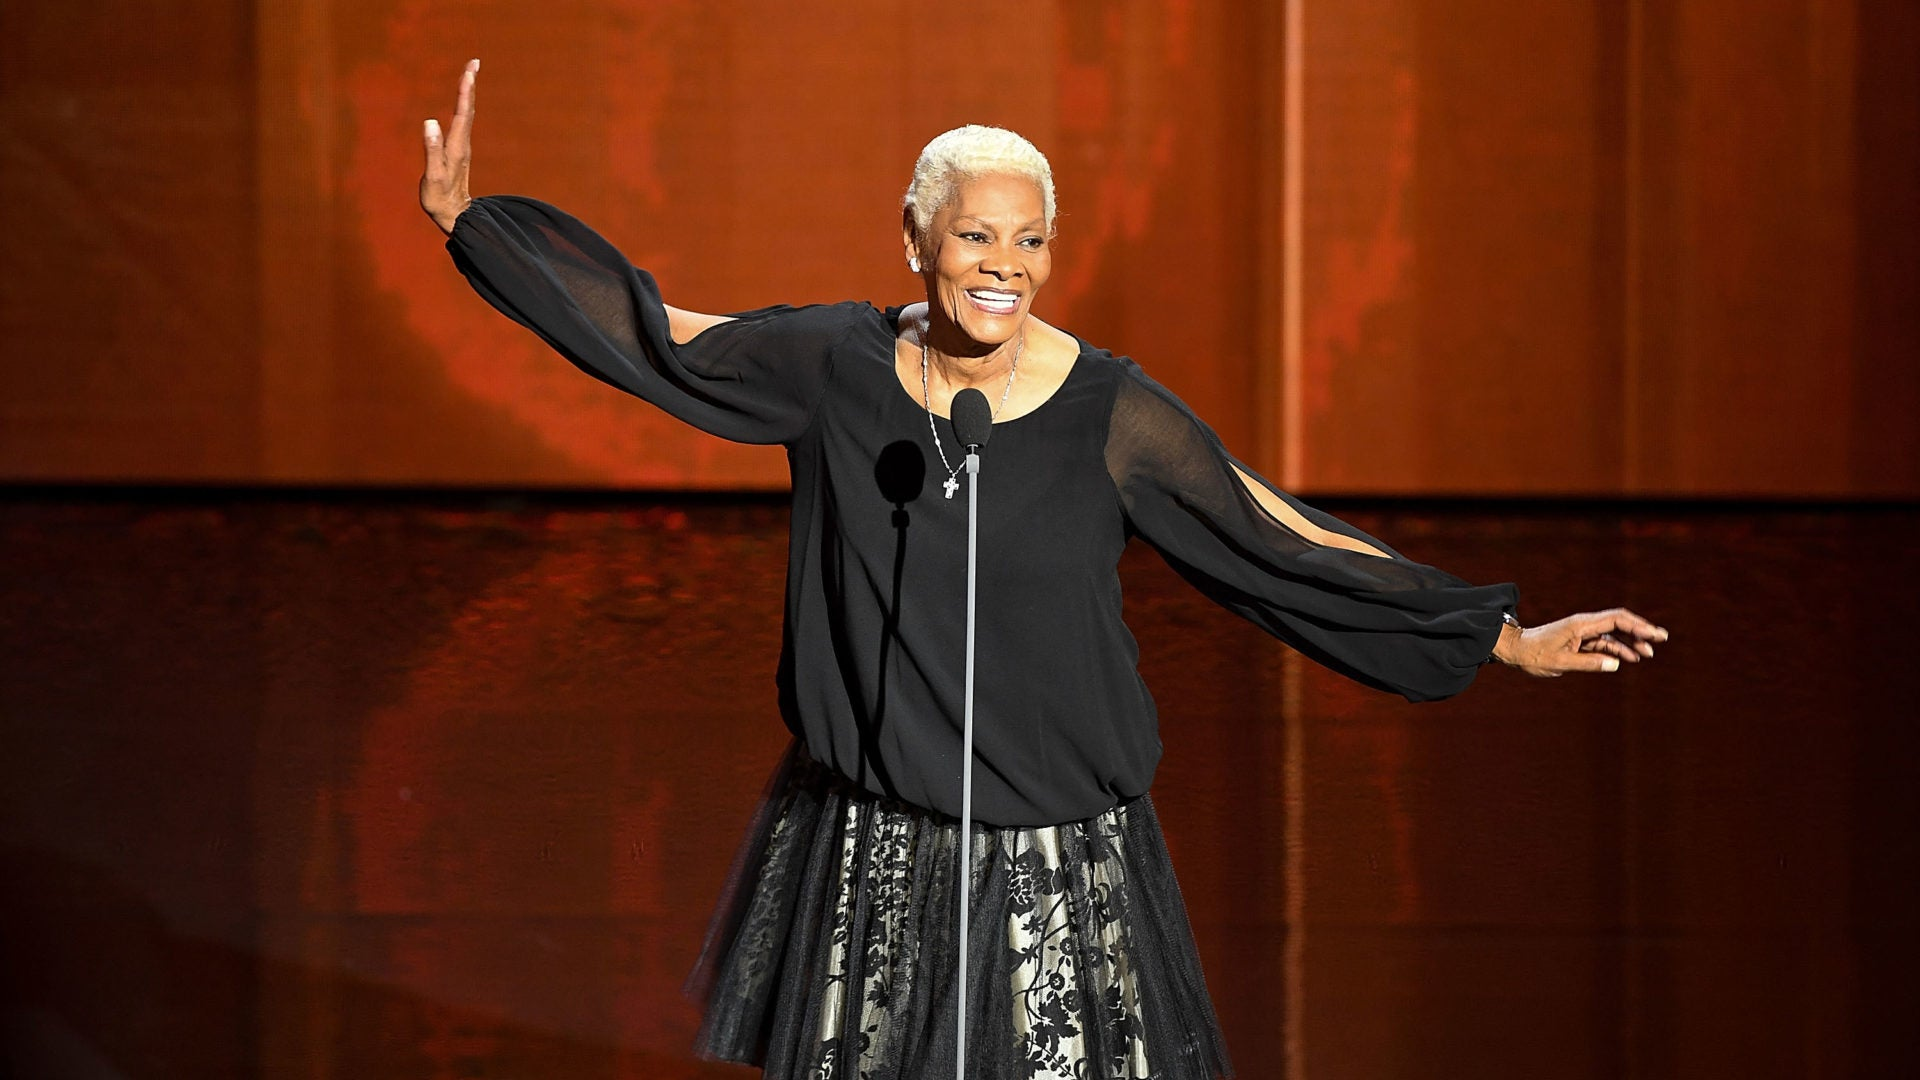 Dionne Warwick Is So Iconic, She Has Two Films In The WorksAbout Her Life